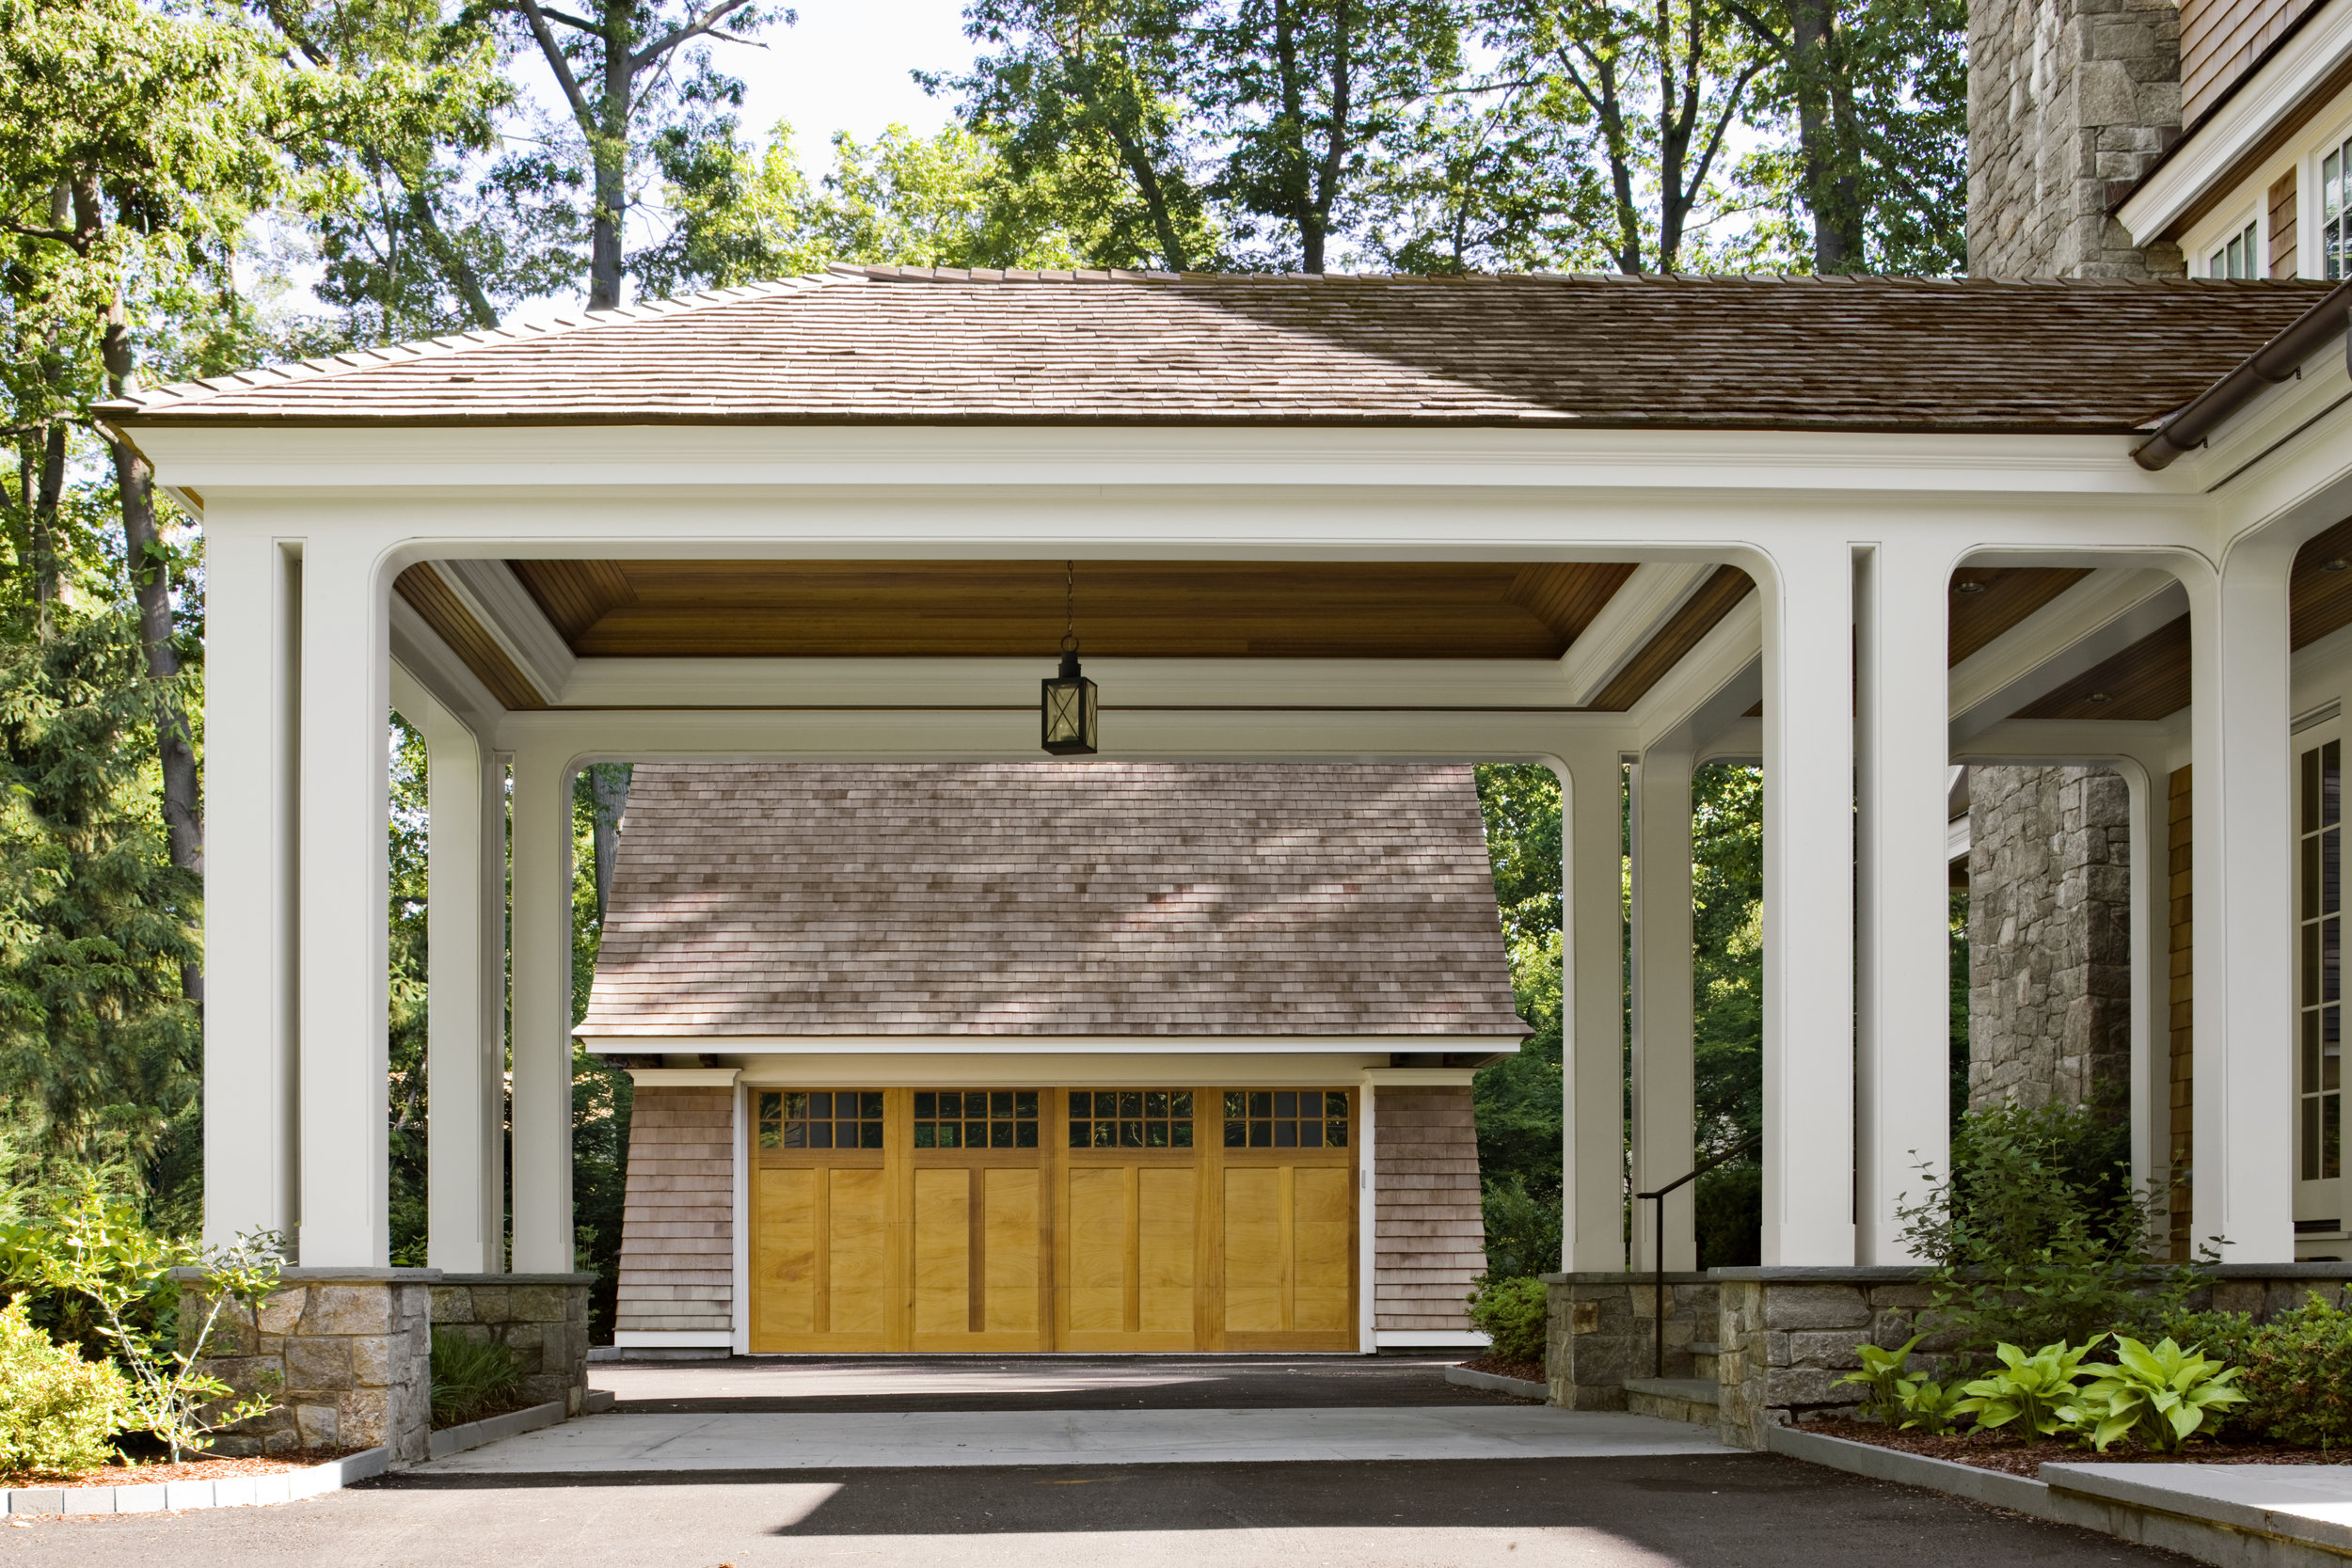 The Porte Cochere serves as a place to park the car to unload kids, dogs and groceries.  It also allows for a detached garage in the rear yard which reduces the visible mass of the front elevation, and de-emphasizes views of garage doors from the street.  The paving at the porte cohere changes from blacktop to bluestone to break up the driveway and emphasize the side entrance into the mudroom.  The driveway edge is a vertically installed bluestone instead of the typical belgium block.